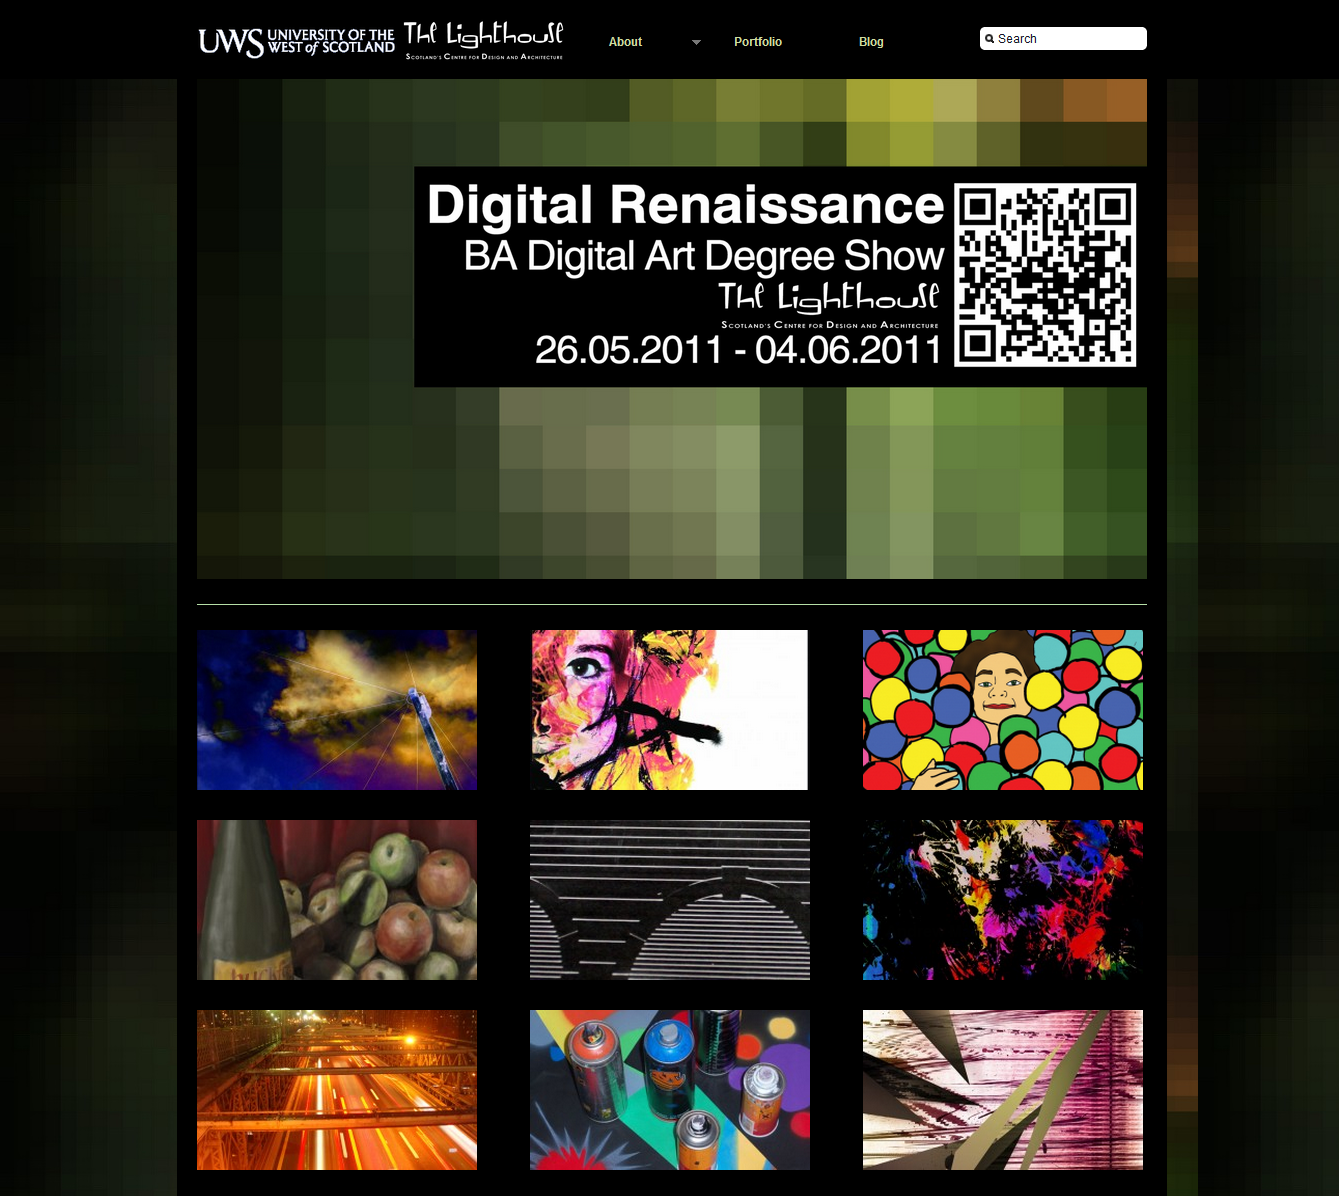 digital-renaissance-ba-digital-art-degree-show2